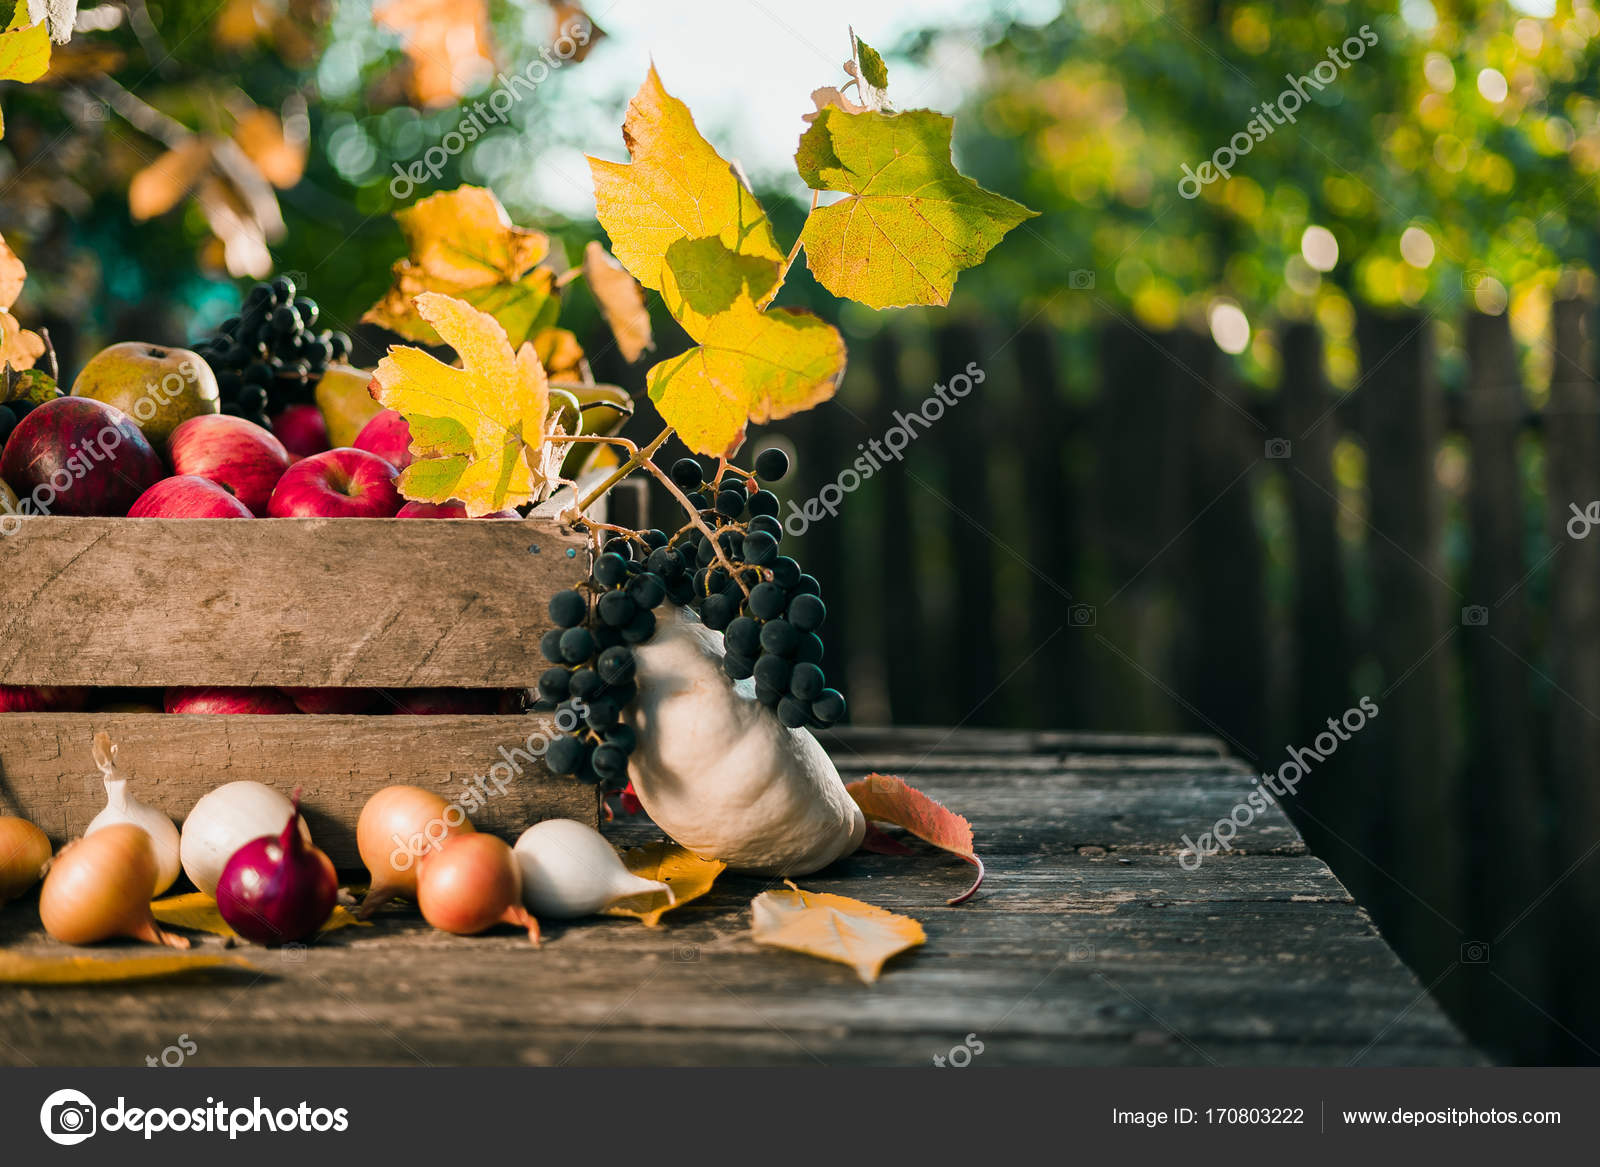 outdoor backgrounds. Autumn Fruits On Old Wood Table In Outdoor Backgrounds. \u2014 Photo By Elijah_sad Backgrounds K